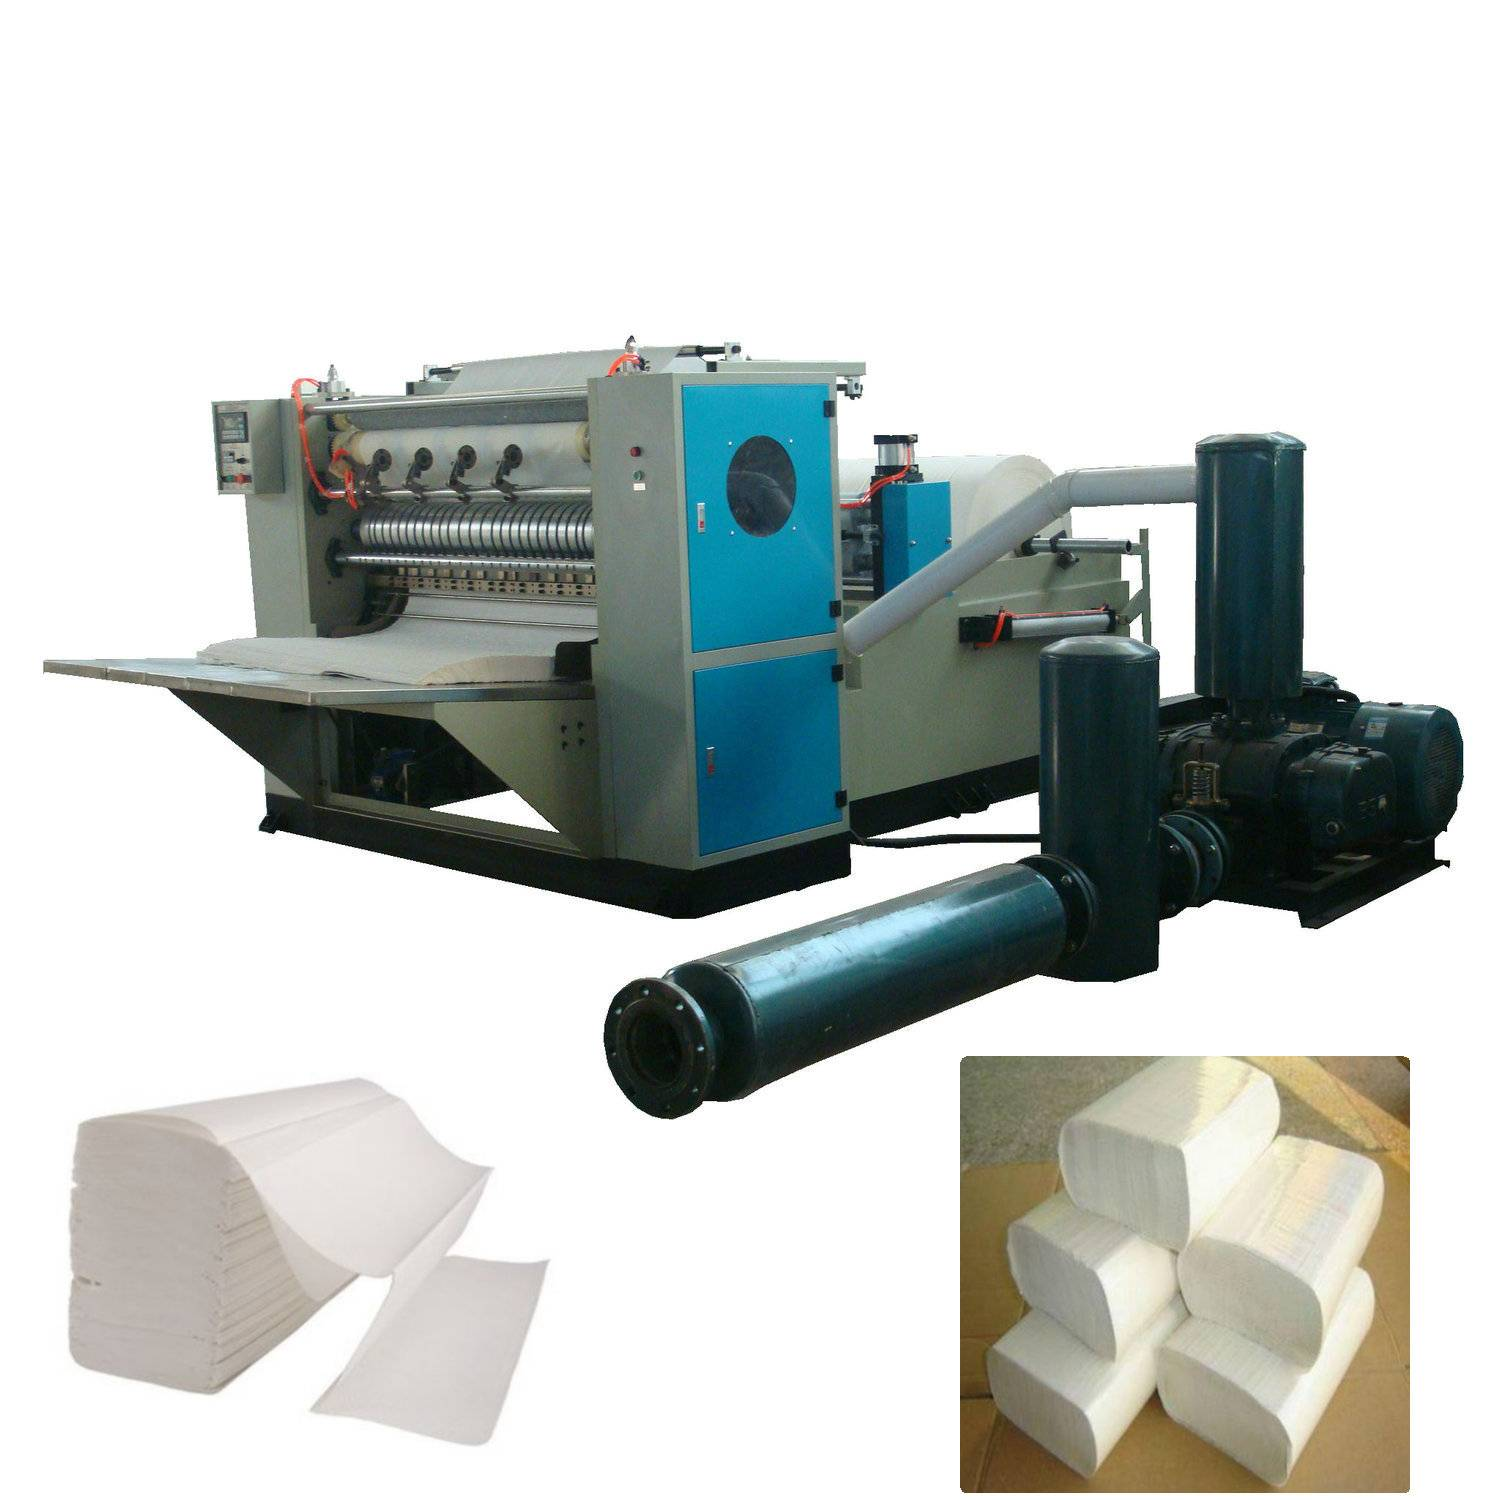 XY-BT-288 N/Z folding hand towel paper making machine